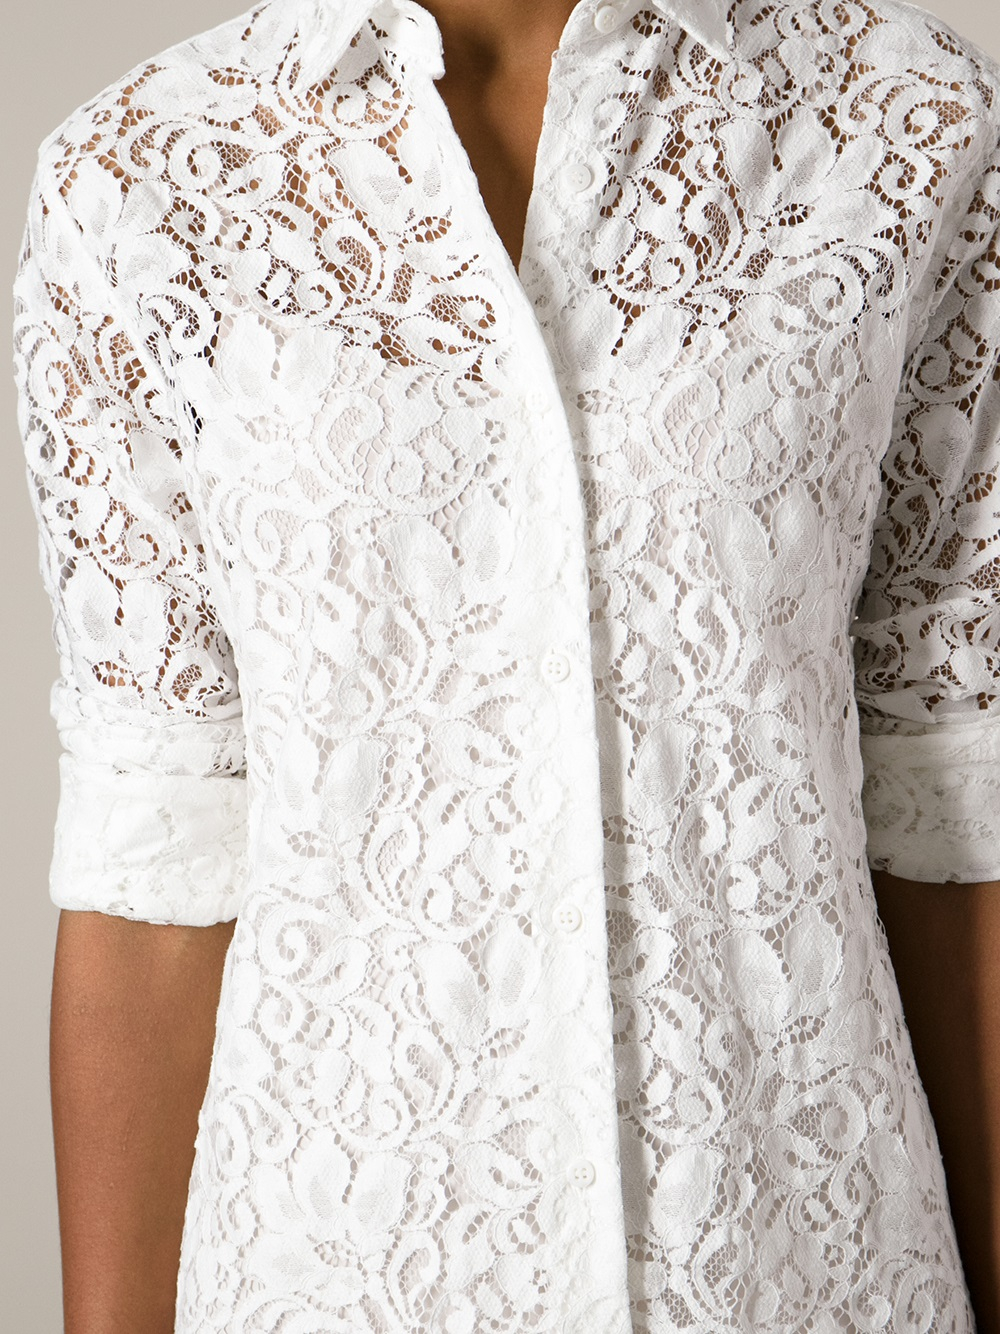 Lyst - Ermanno Scervino Lace Shirt in White